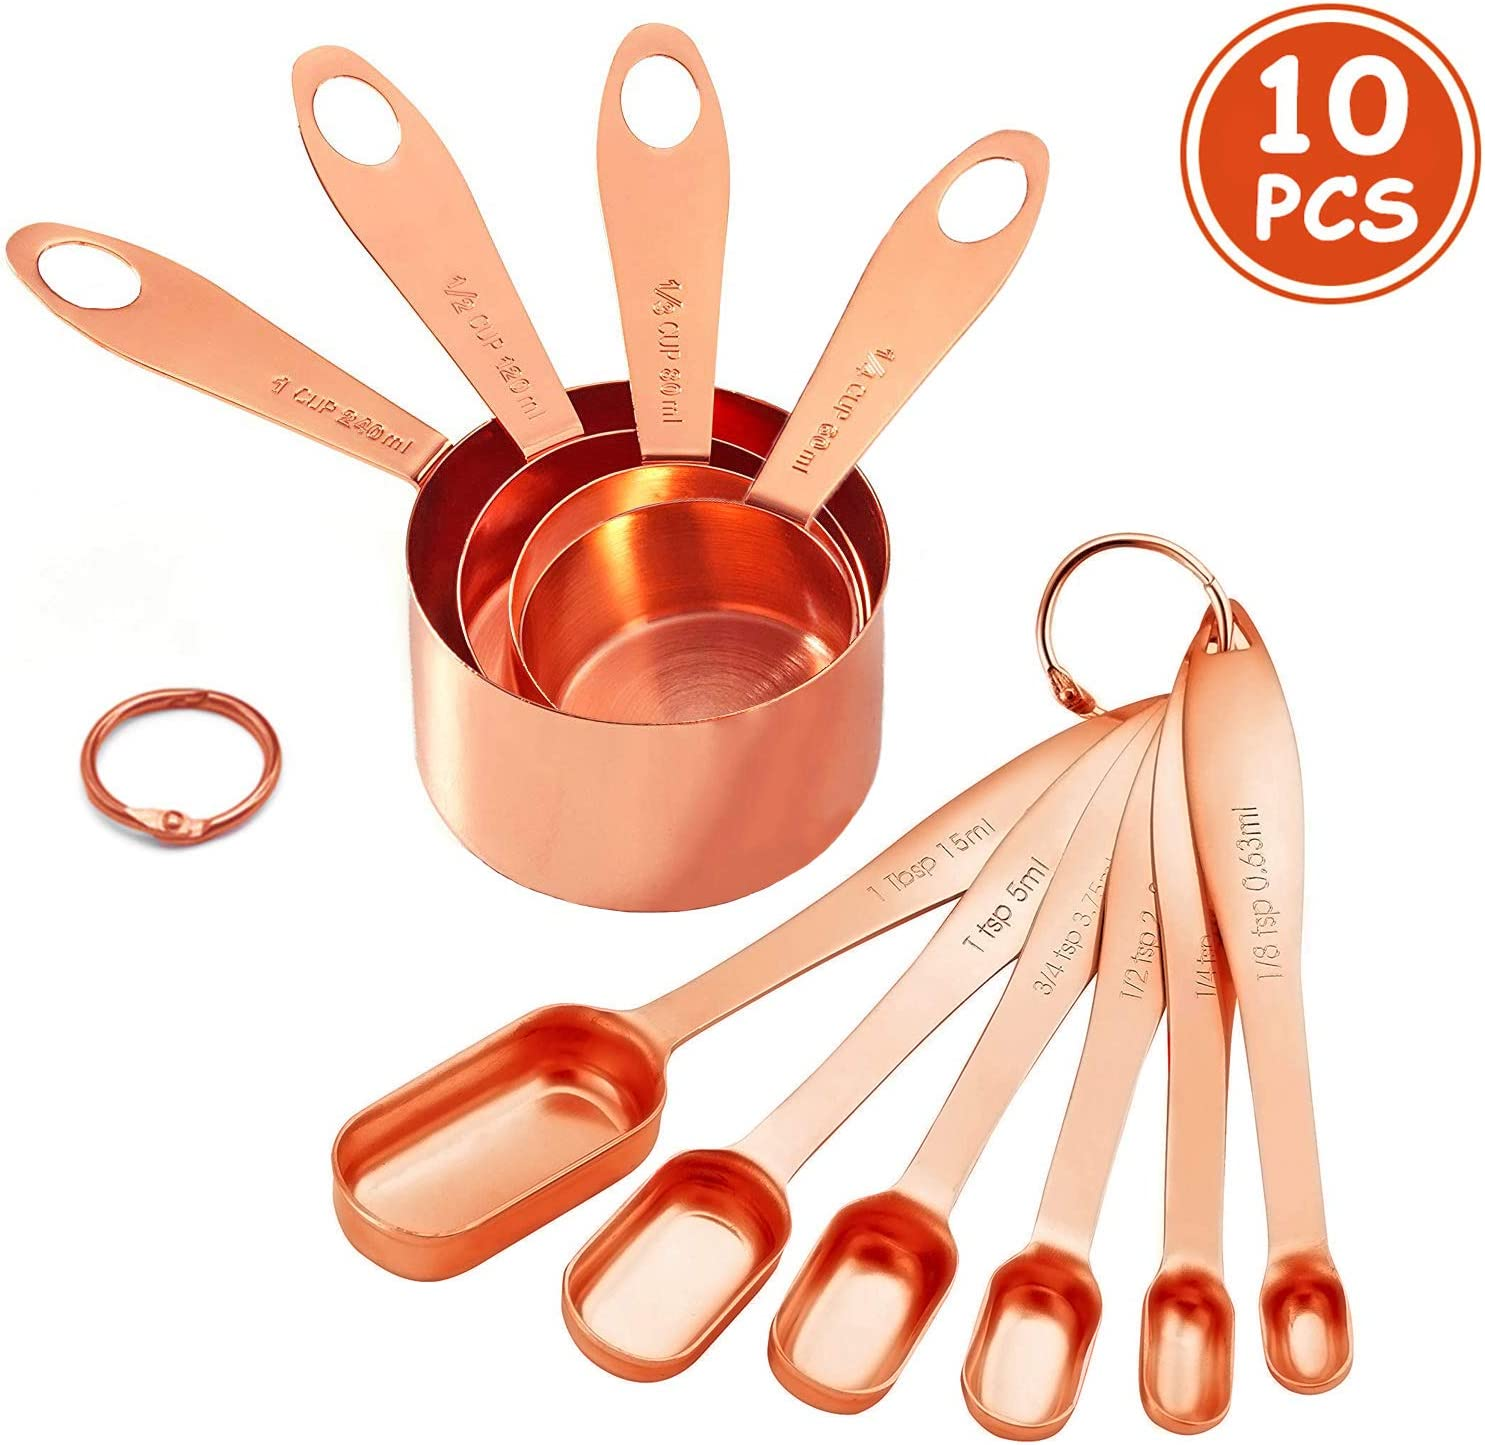 10-Piece Copper Measuring Cups and Spoons Set Stainless Steel Heavy Duty Rose Gold Engraved Stackable Nesting Kitchen Teaspoon/Tablespoon Set for Dry & Liquid Ingredients Coffee Cooking & Baking